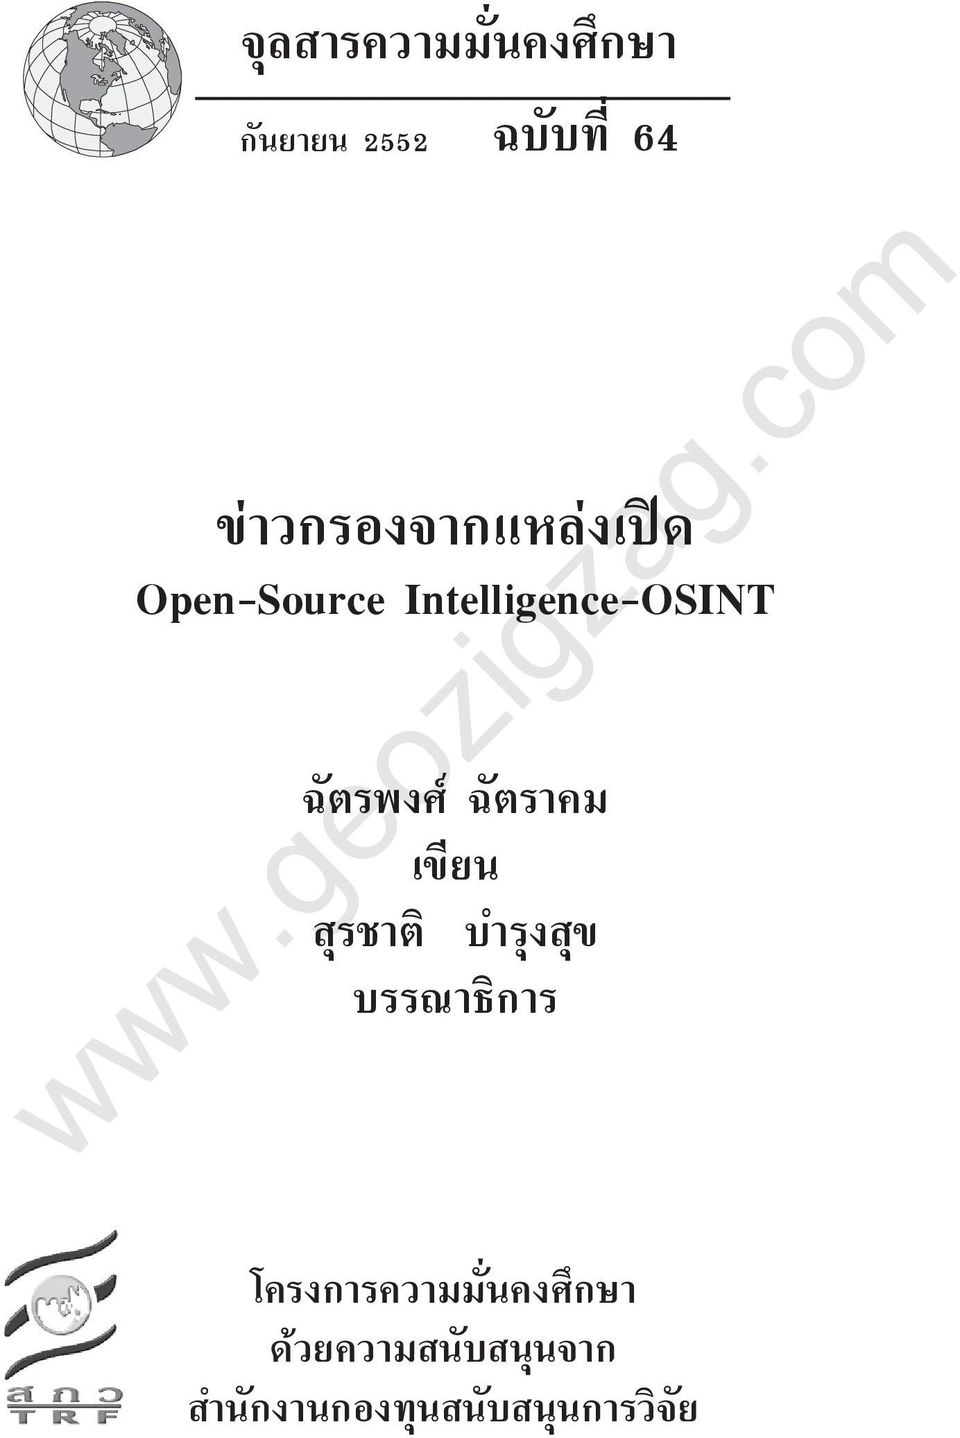 People Lessons Open-Source Learned from Intelligence-OSINT the King Rama VI Period ฉ